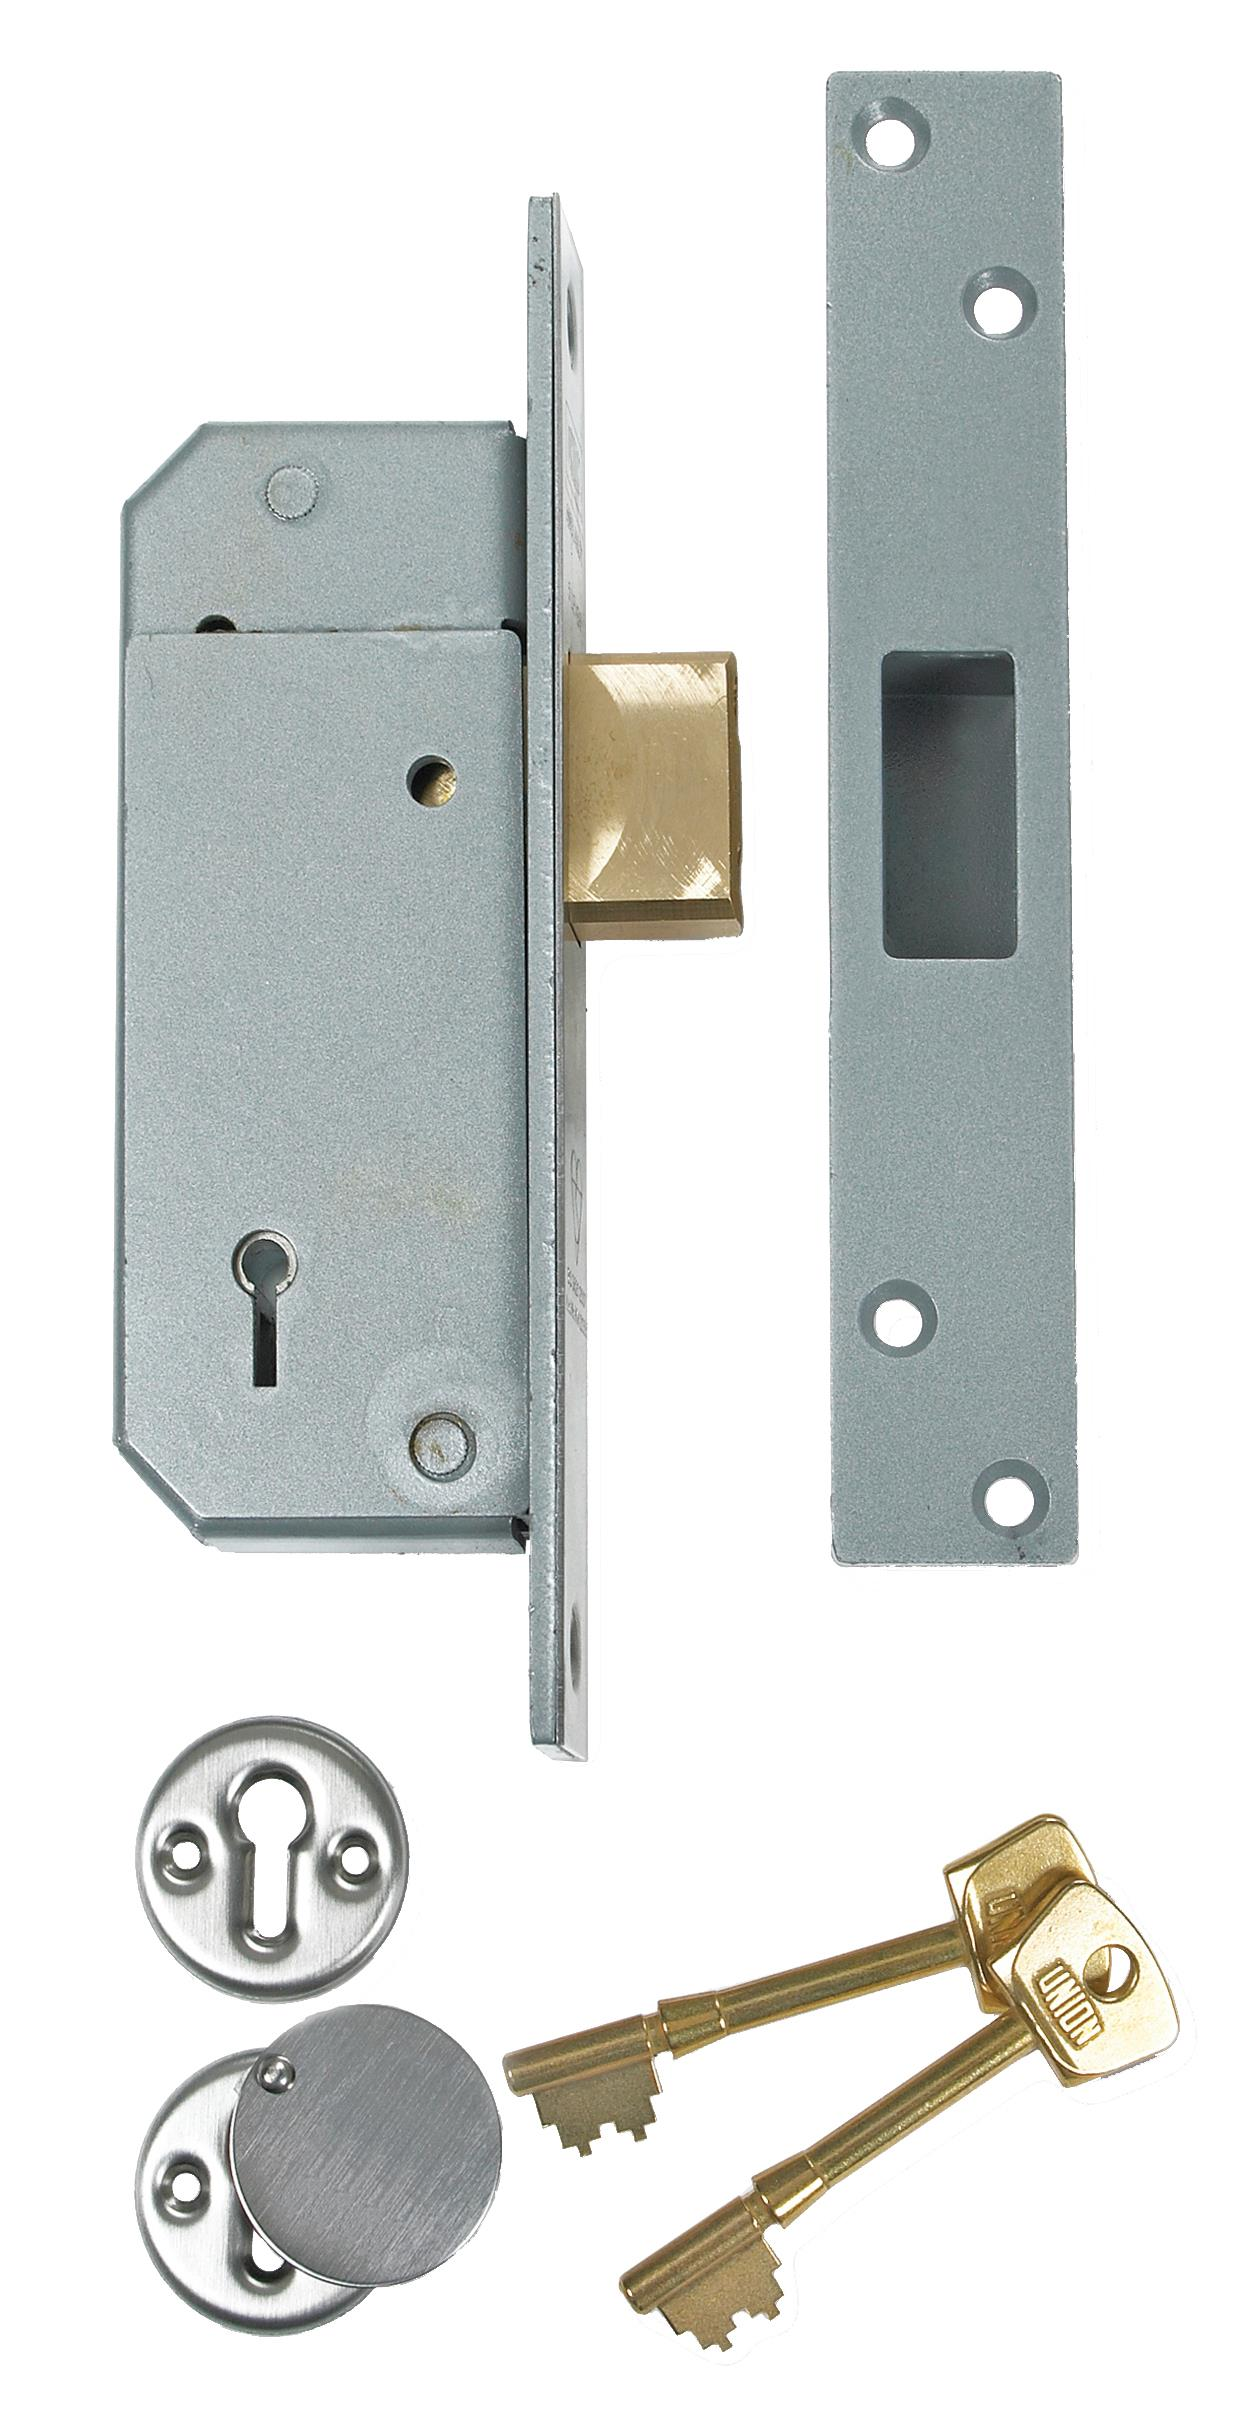 3G220 - Narrow Stile Mortice Deadlock